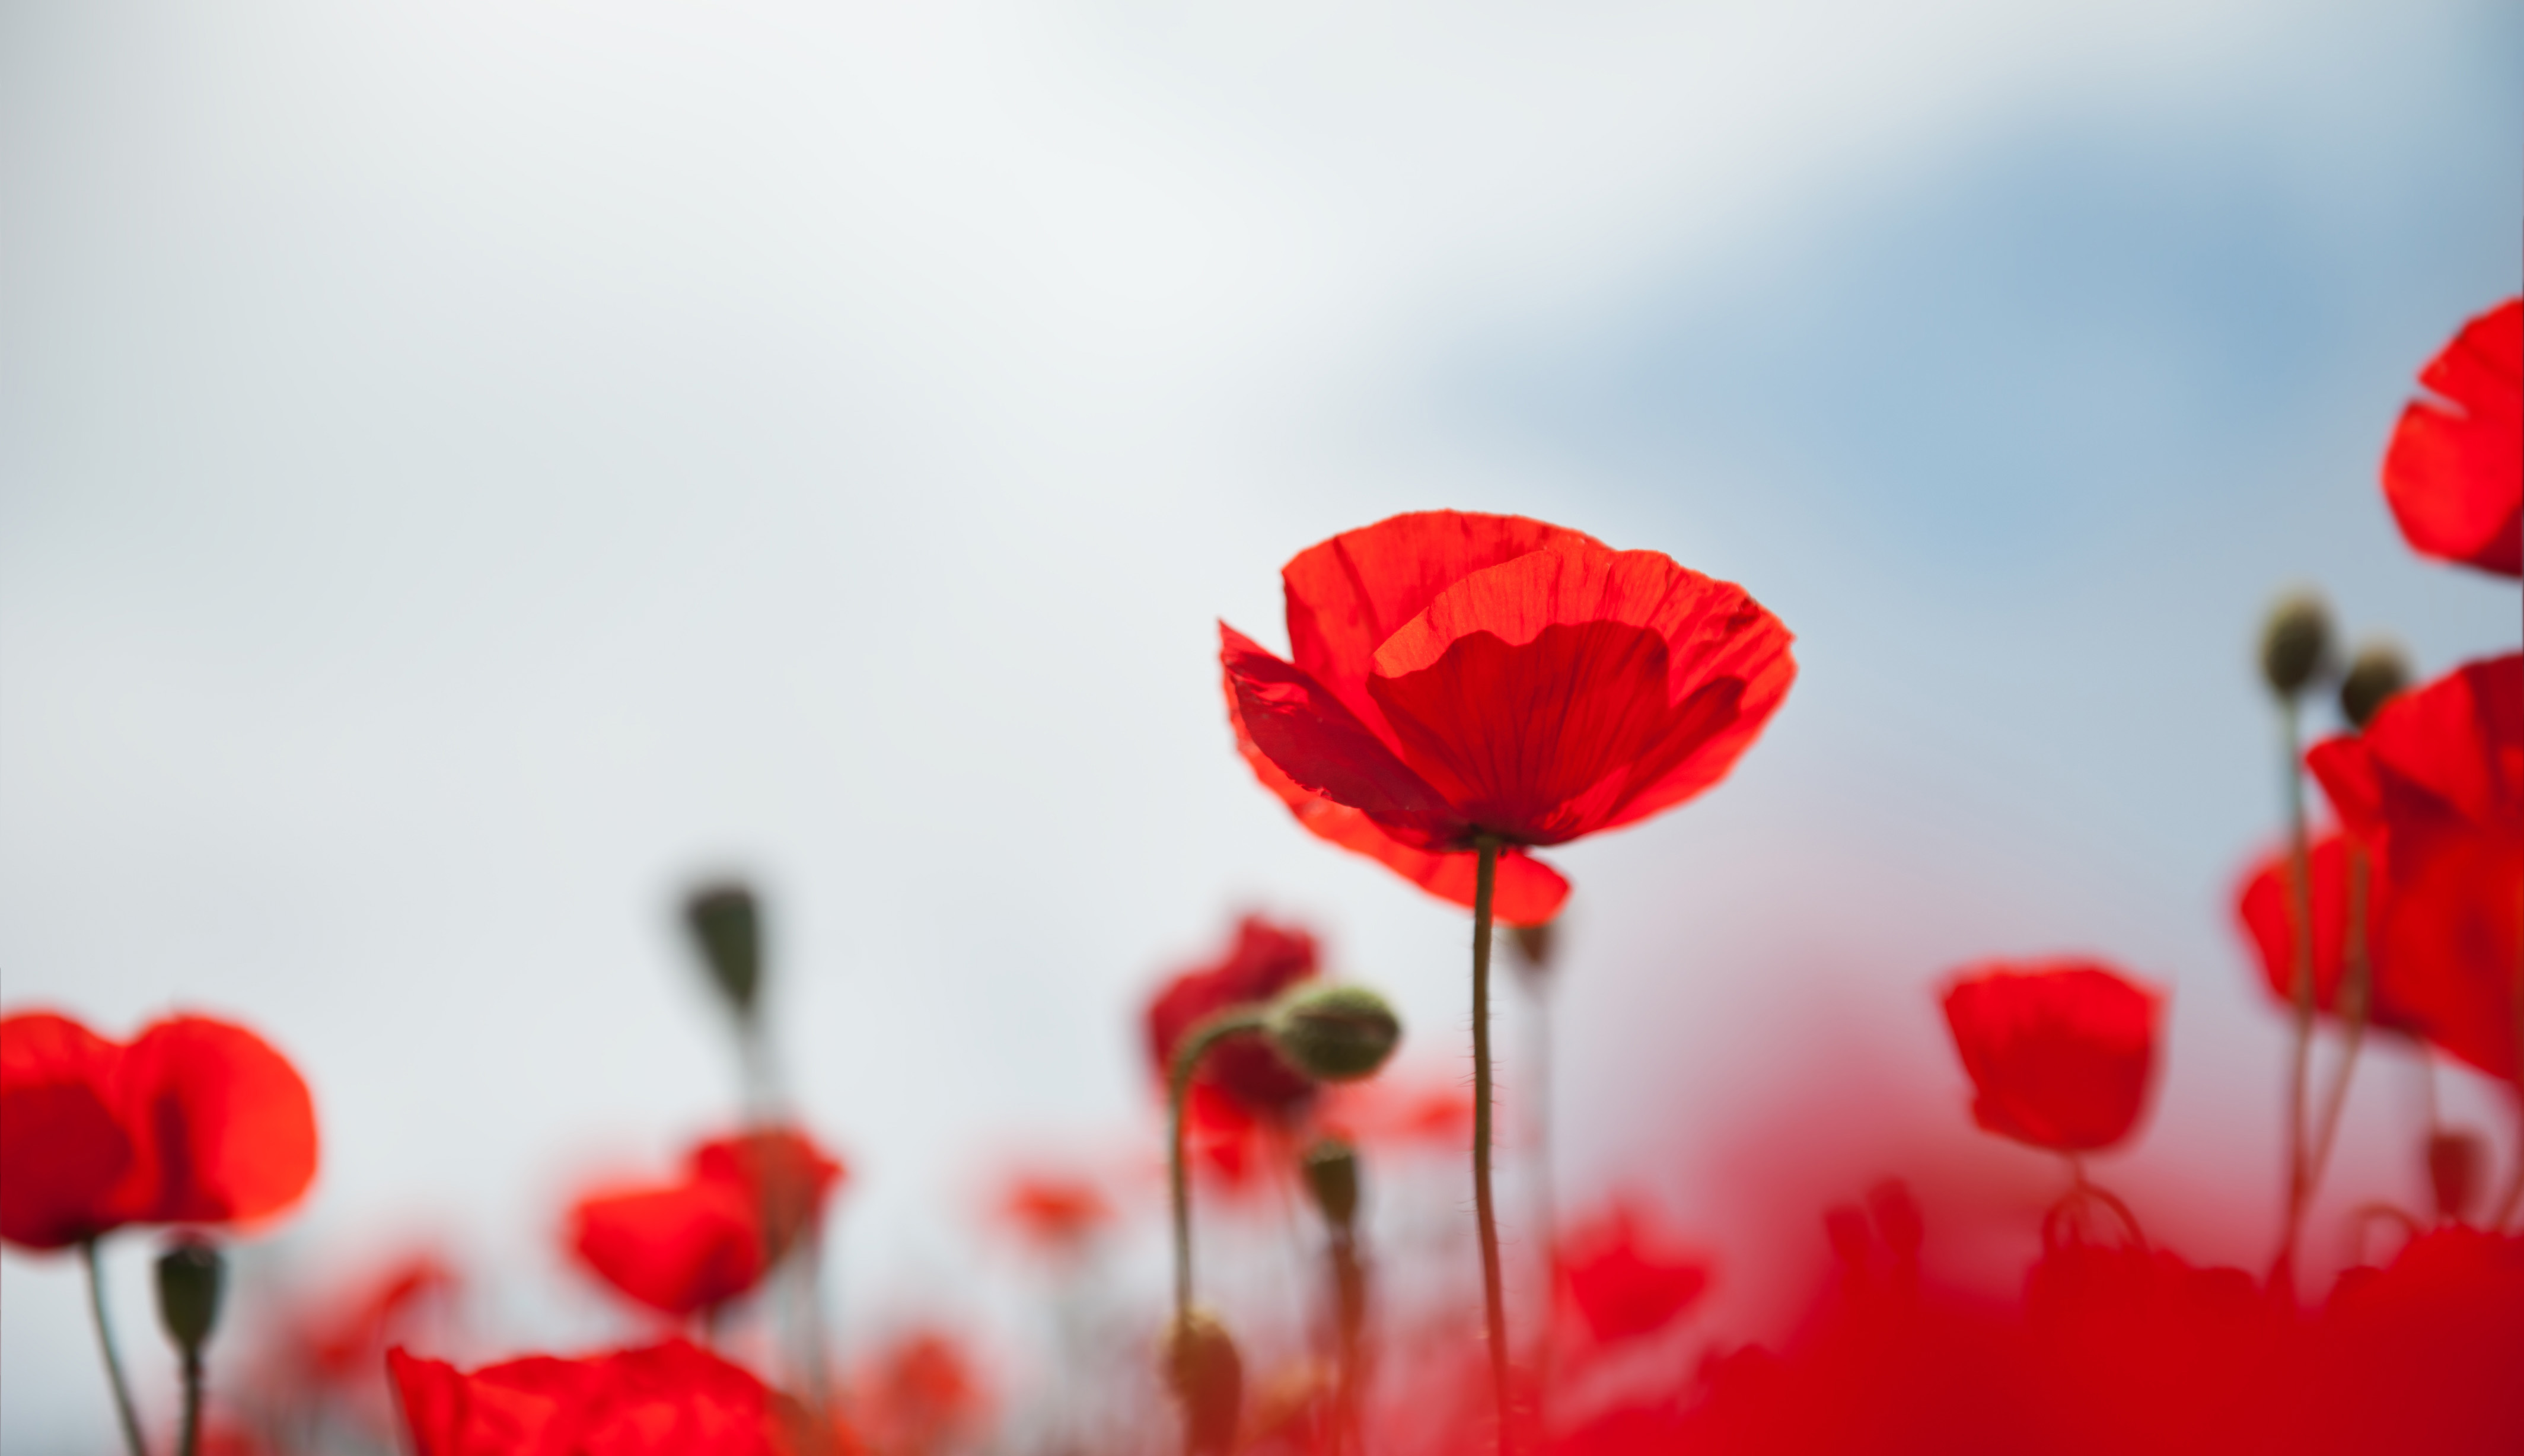 Close up of a red poppy flower in a field of poppy flowers